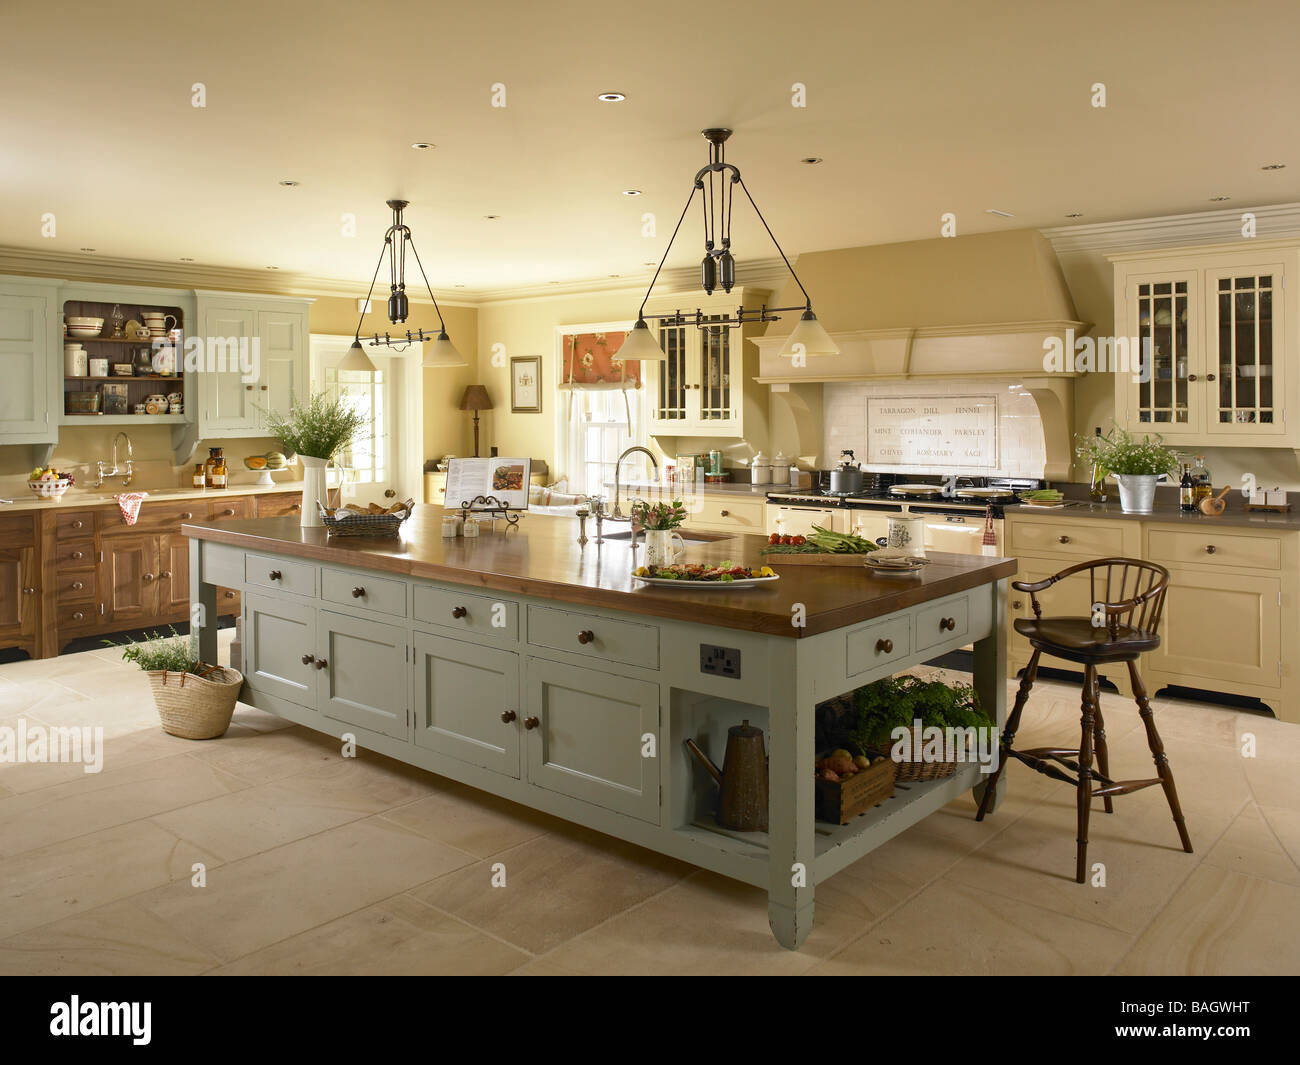 kitchen island large how much is a remodel unit stock photo 23728260 alamy